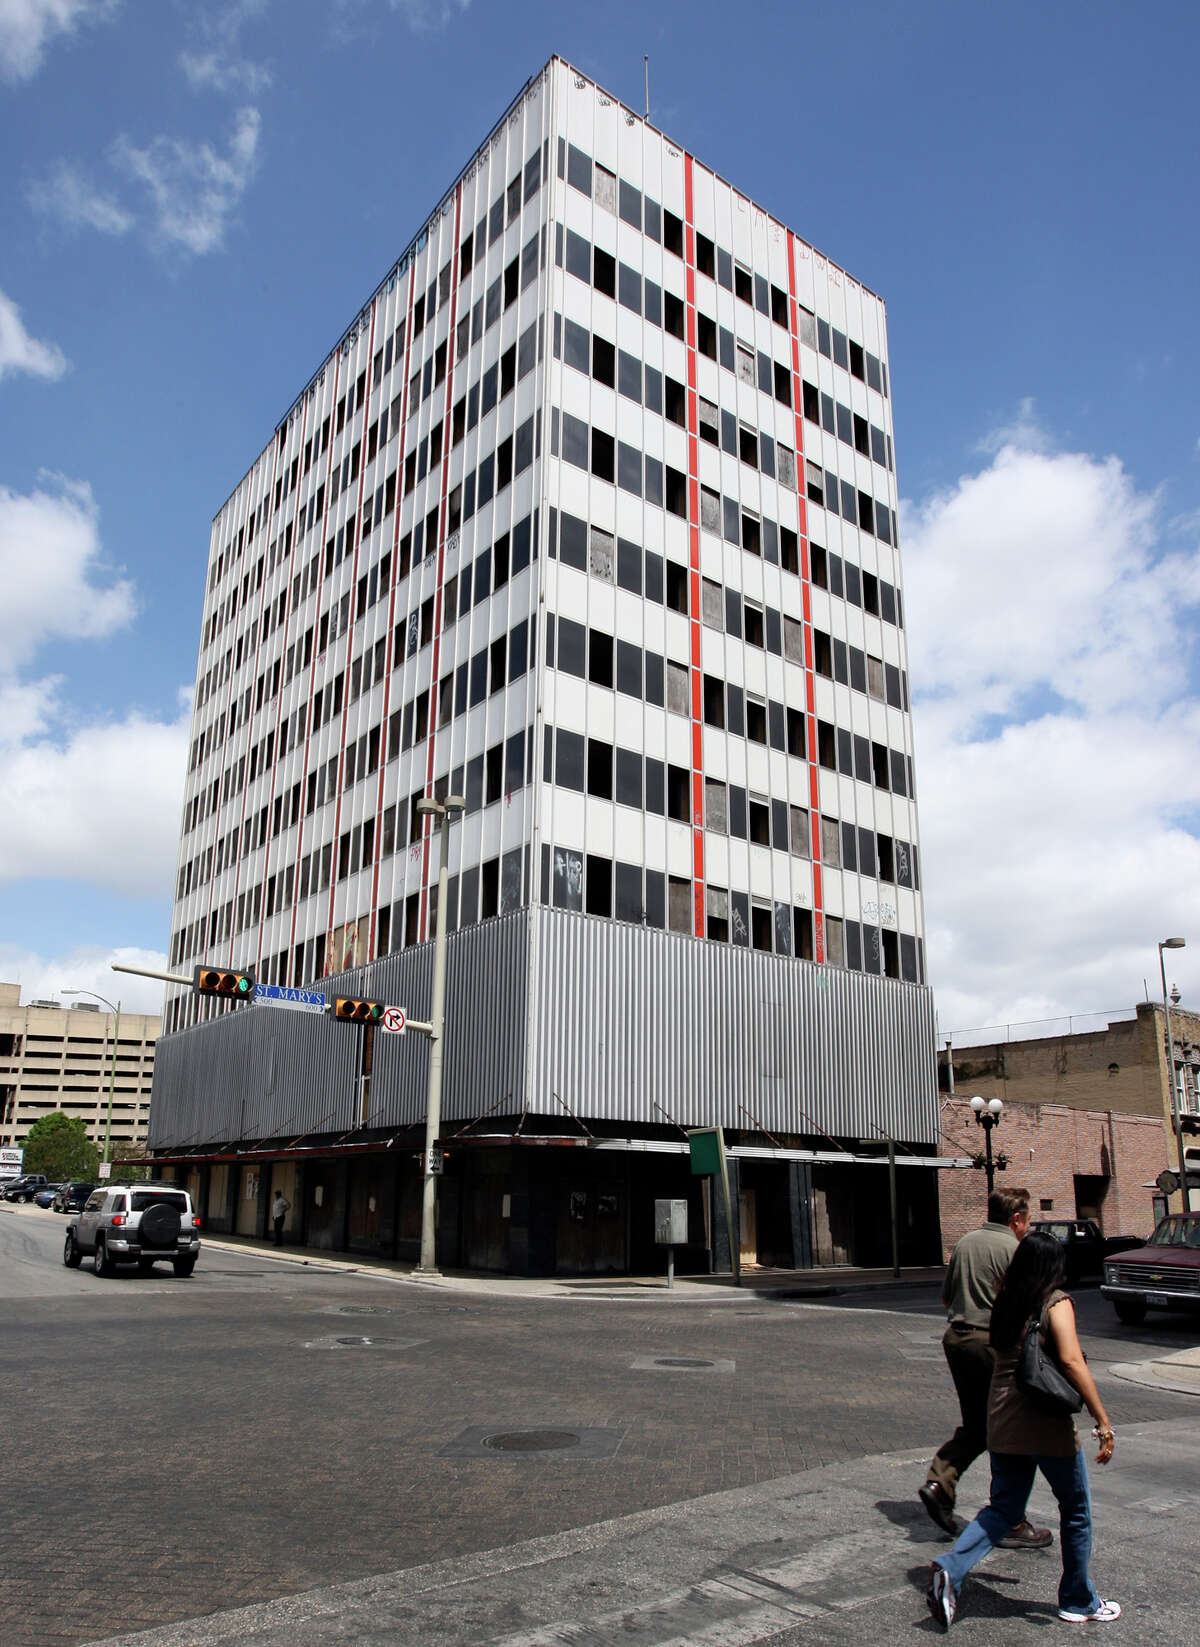 City officials say the vacant building policy has helped persuade the owners of the long-vacant Hedrick building at St Mary's and Martin streets to begin the process of redeveloping it.